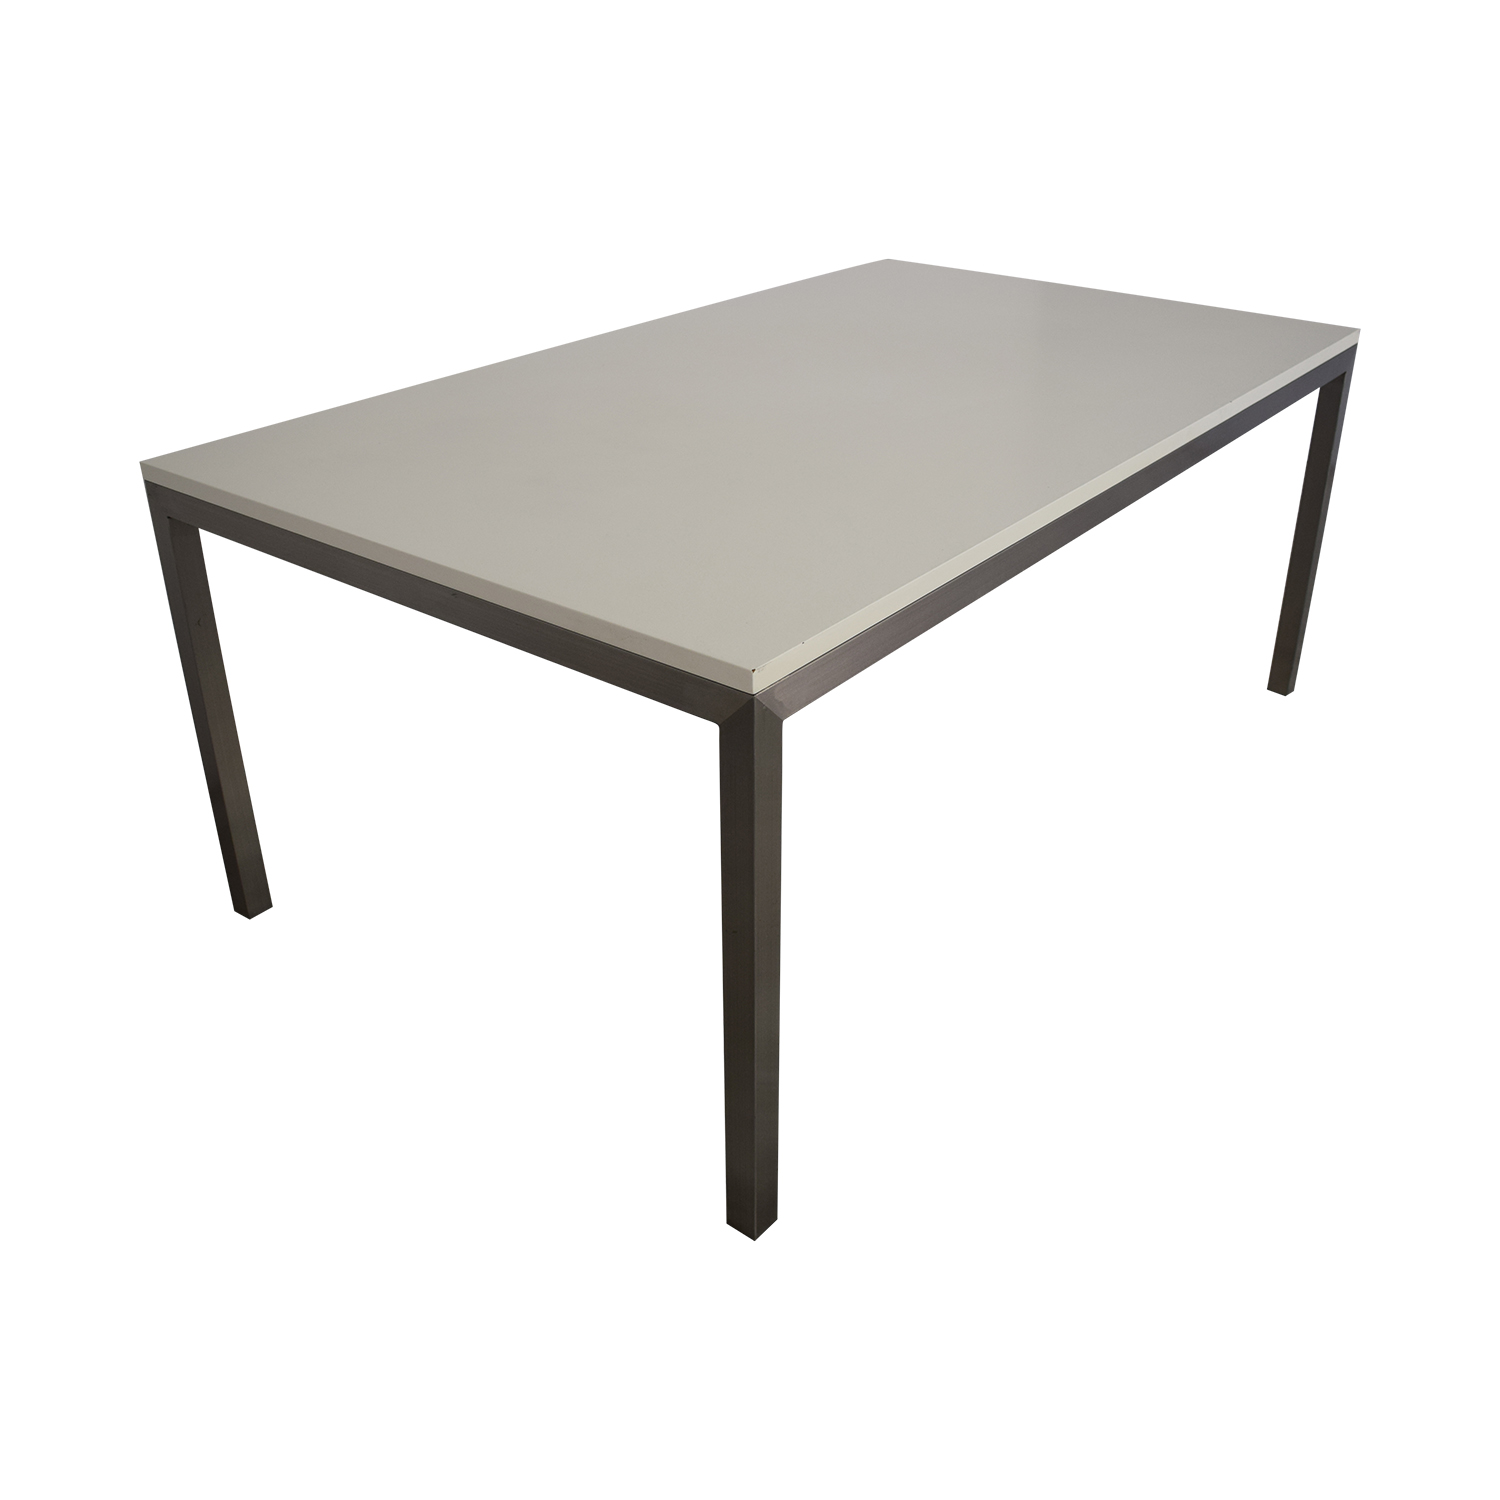 Crate & Barrel Crate & Barrel Parsons Dining Table second hand